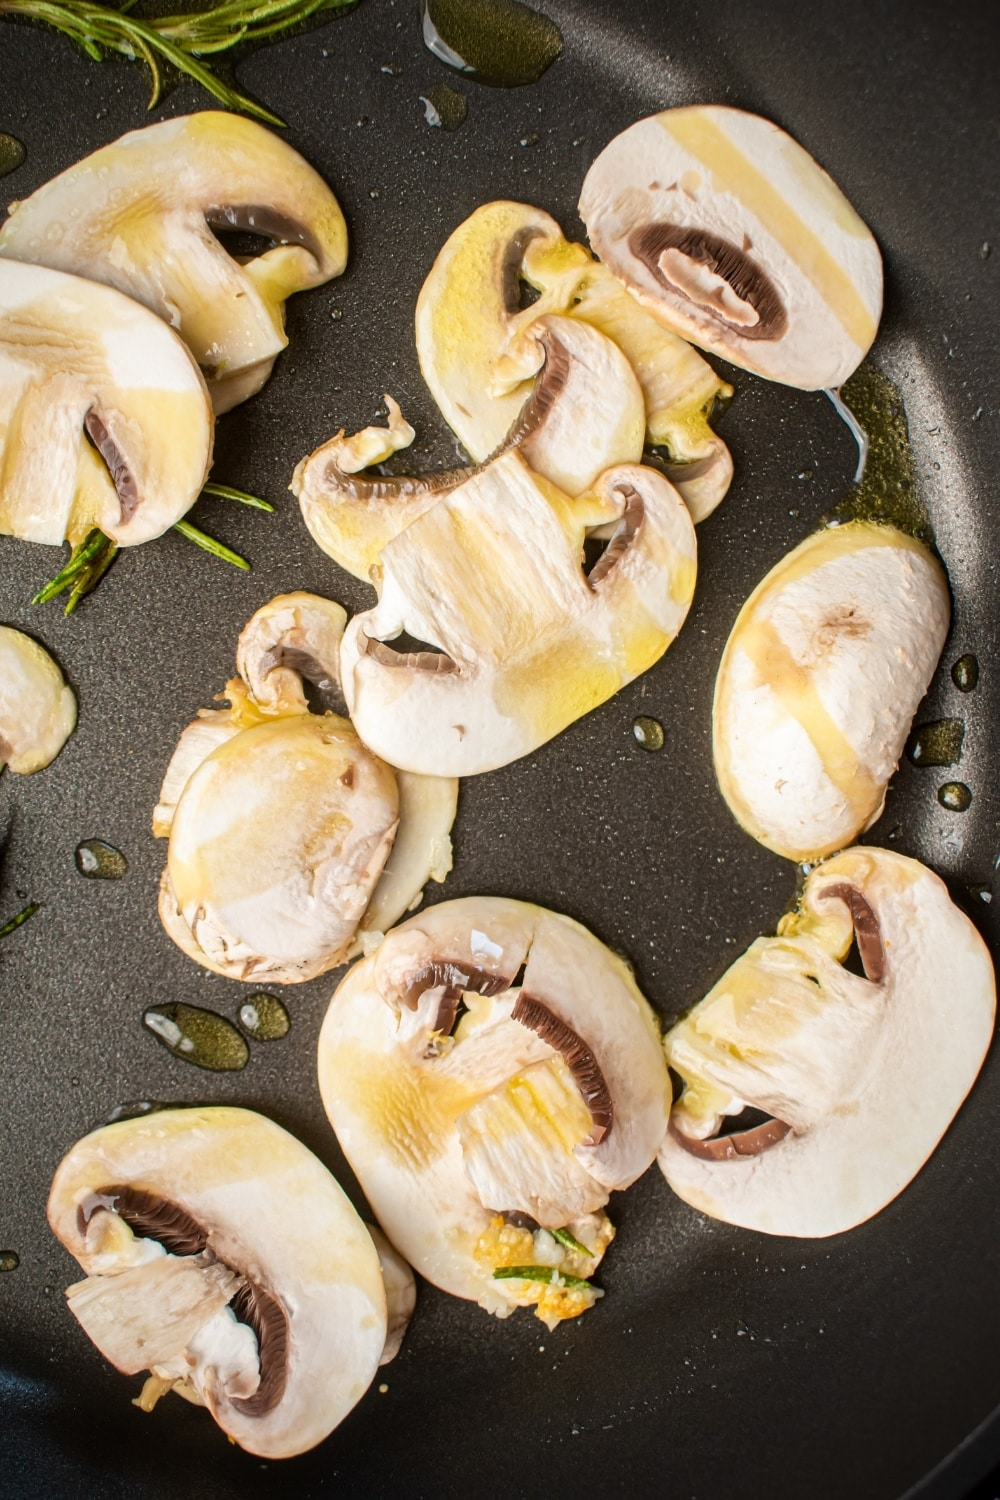 Mushrooms drizzled with olive oil in a skillet.